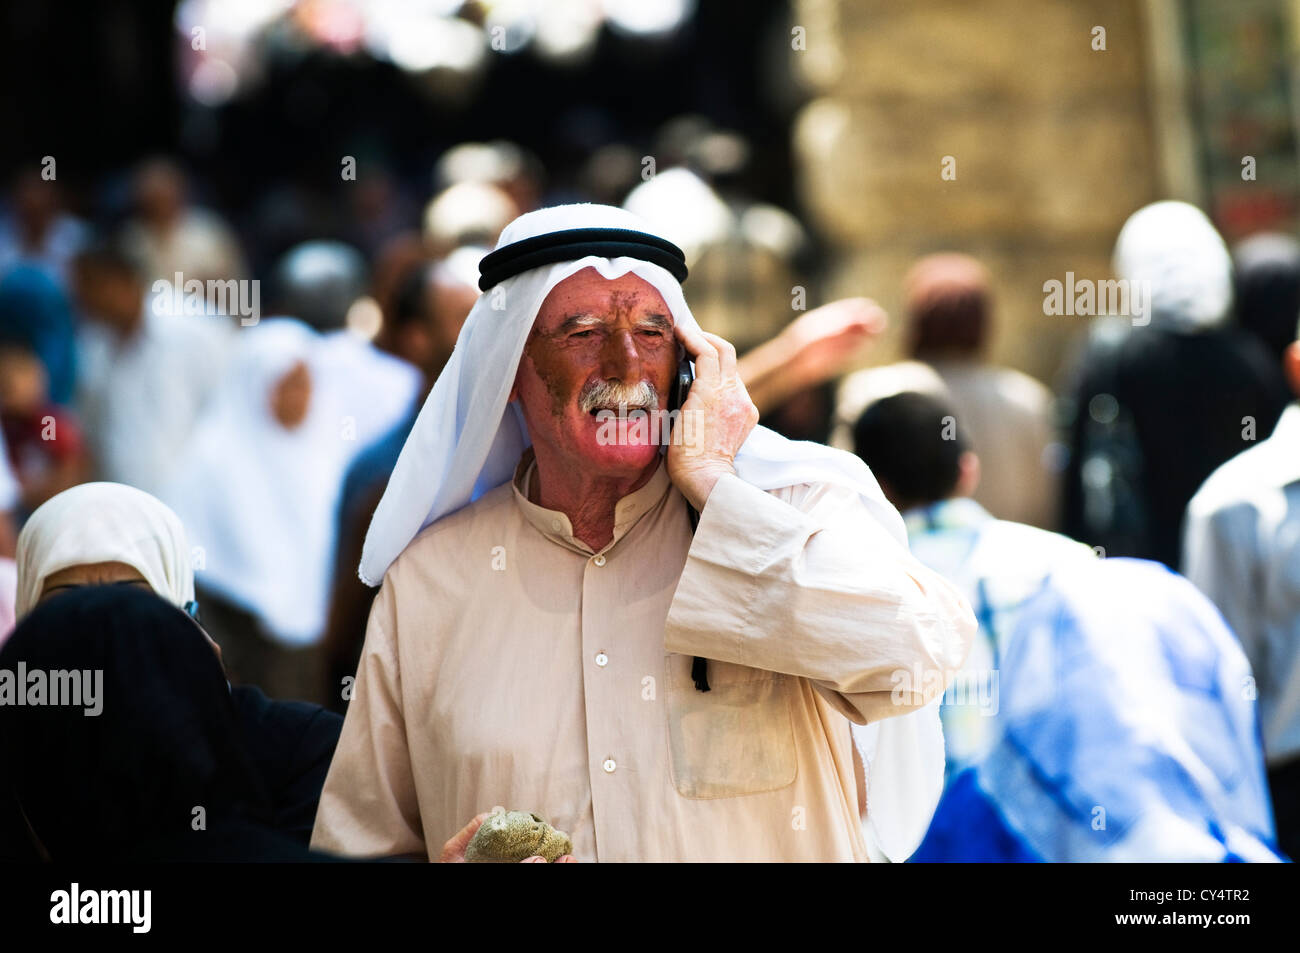 An Arab Palestinian man walking through the narrow streets of the Musim qt in the old city of Jerusalem - Stock Image